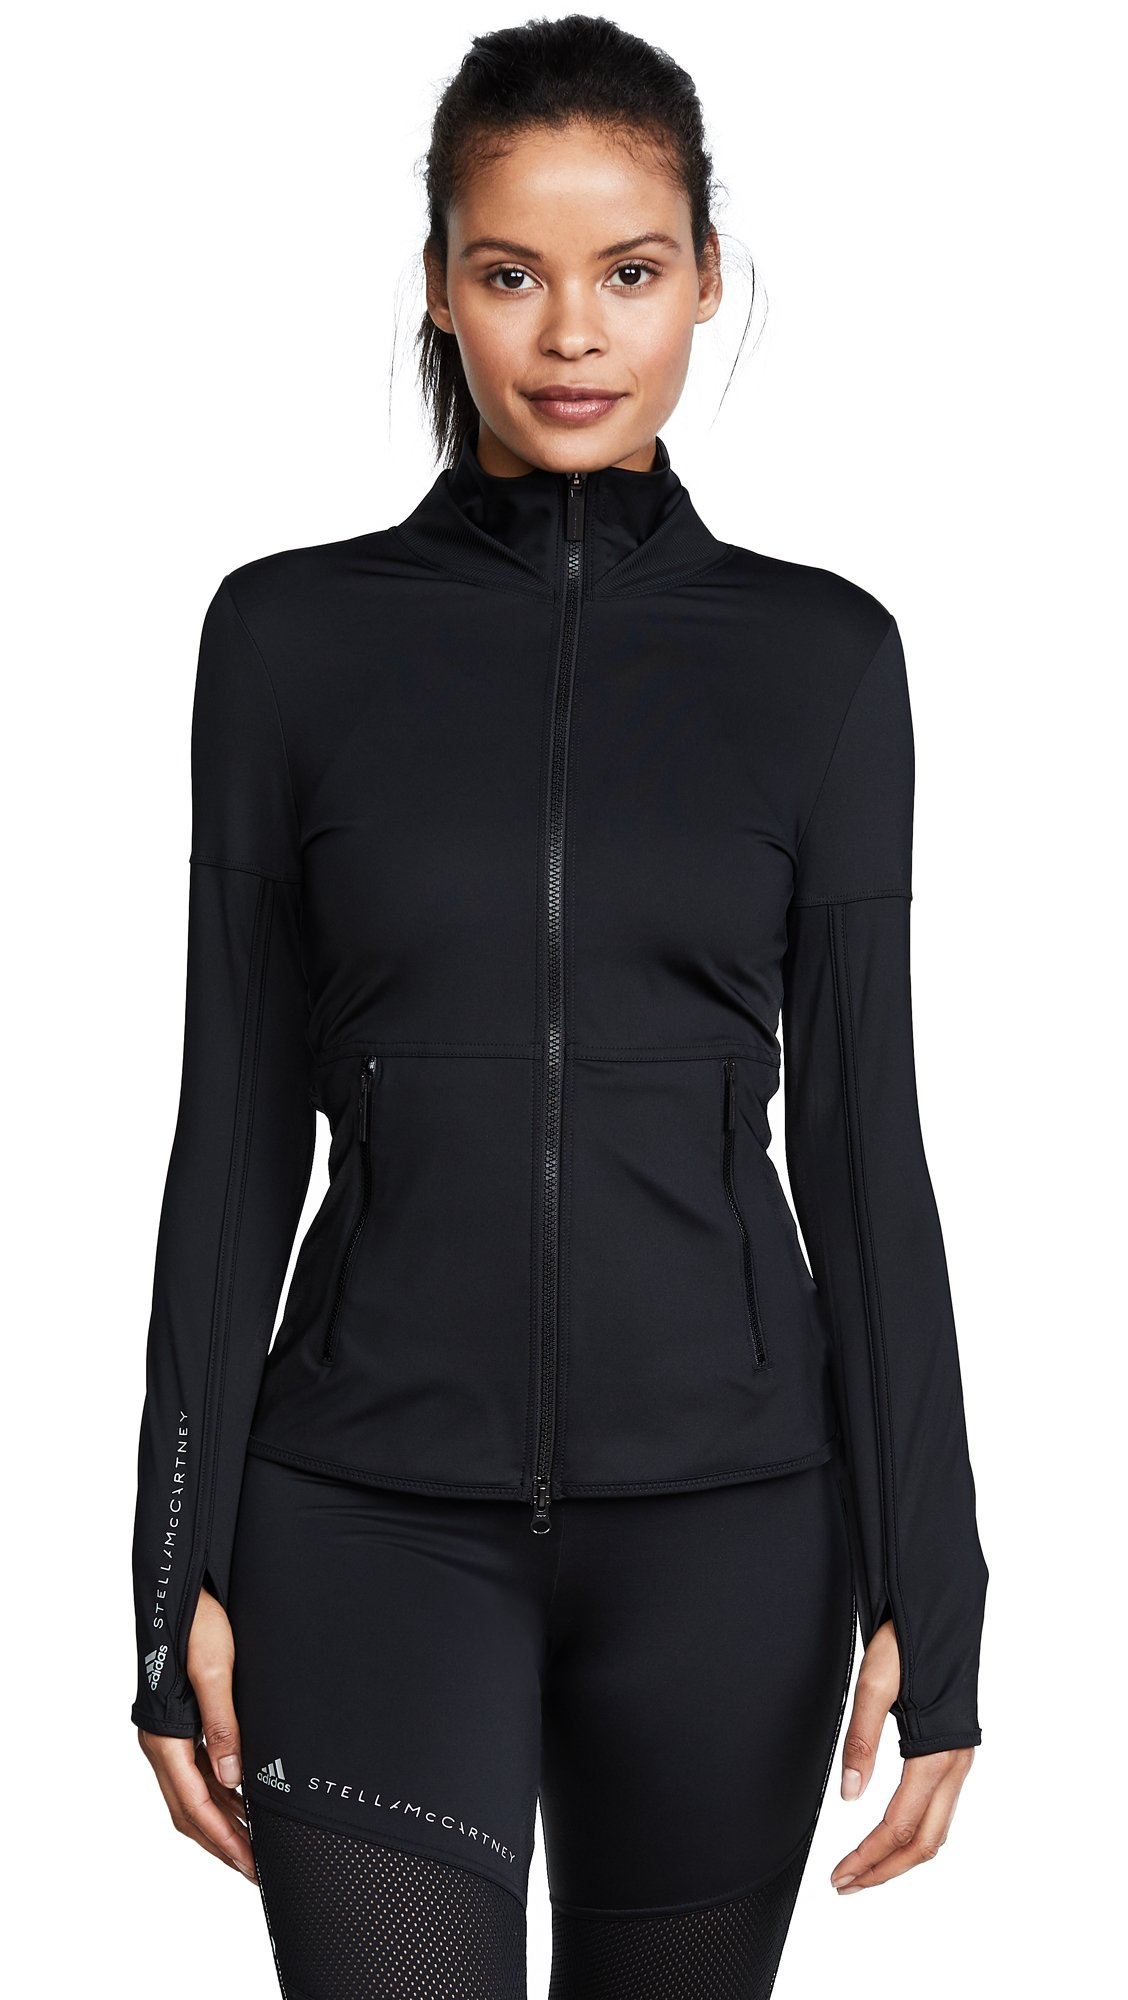 adidas by Stella McCartney Women's Performance Essentials Jacket, Black, Small by adidas